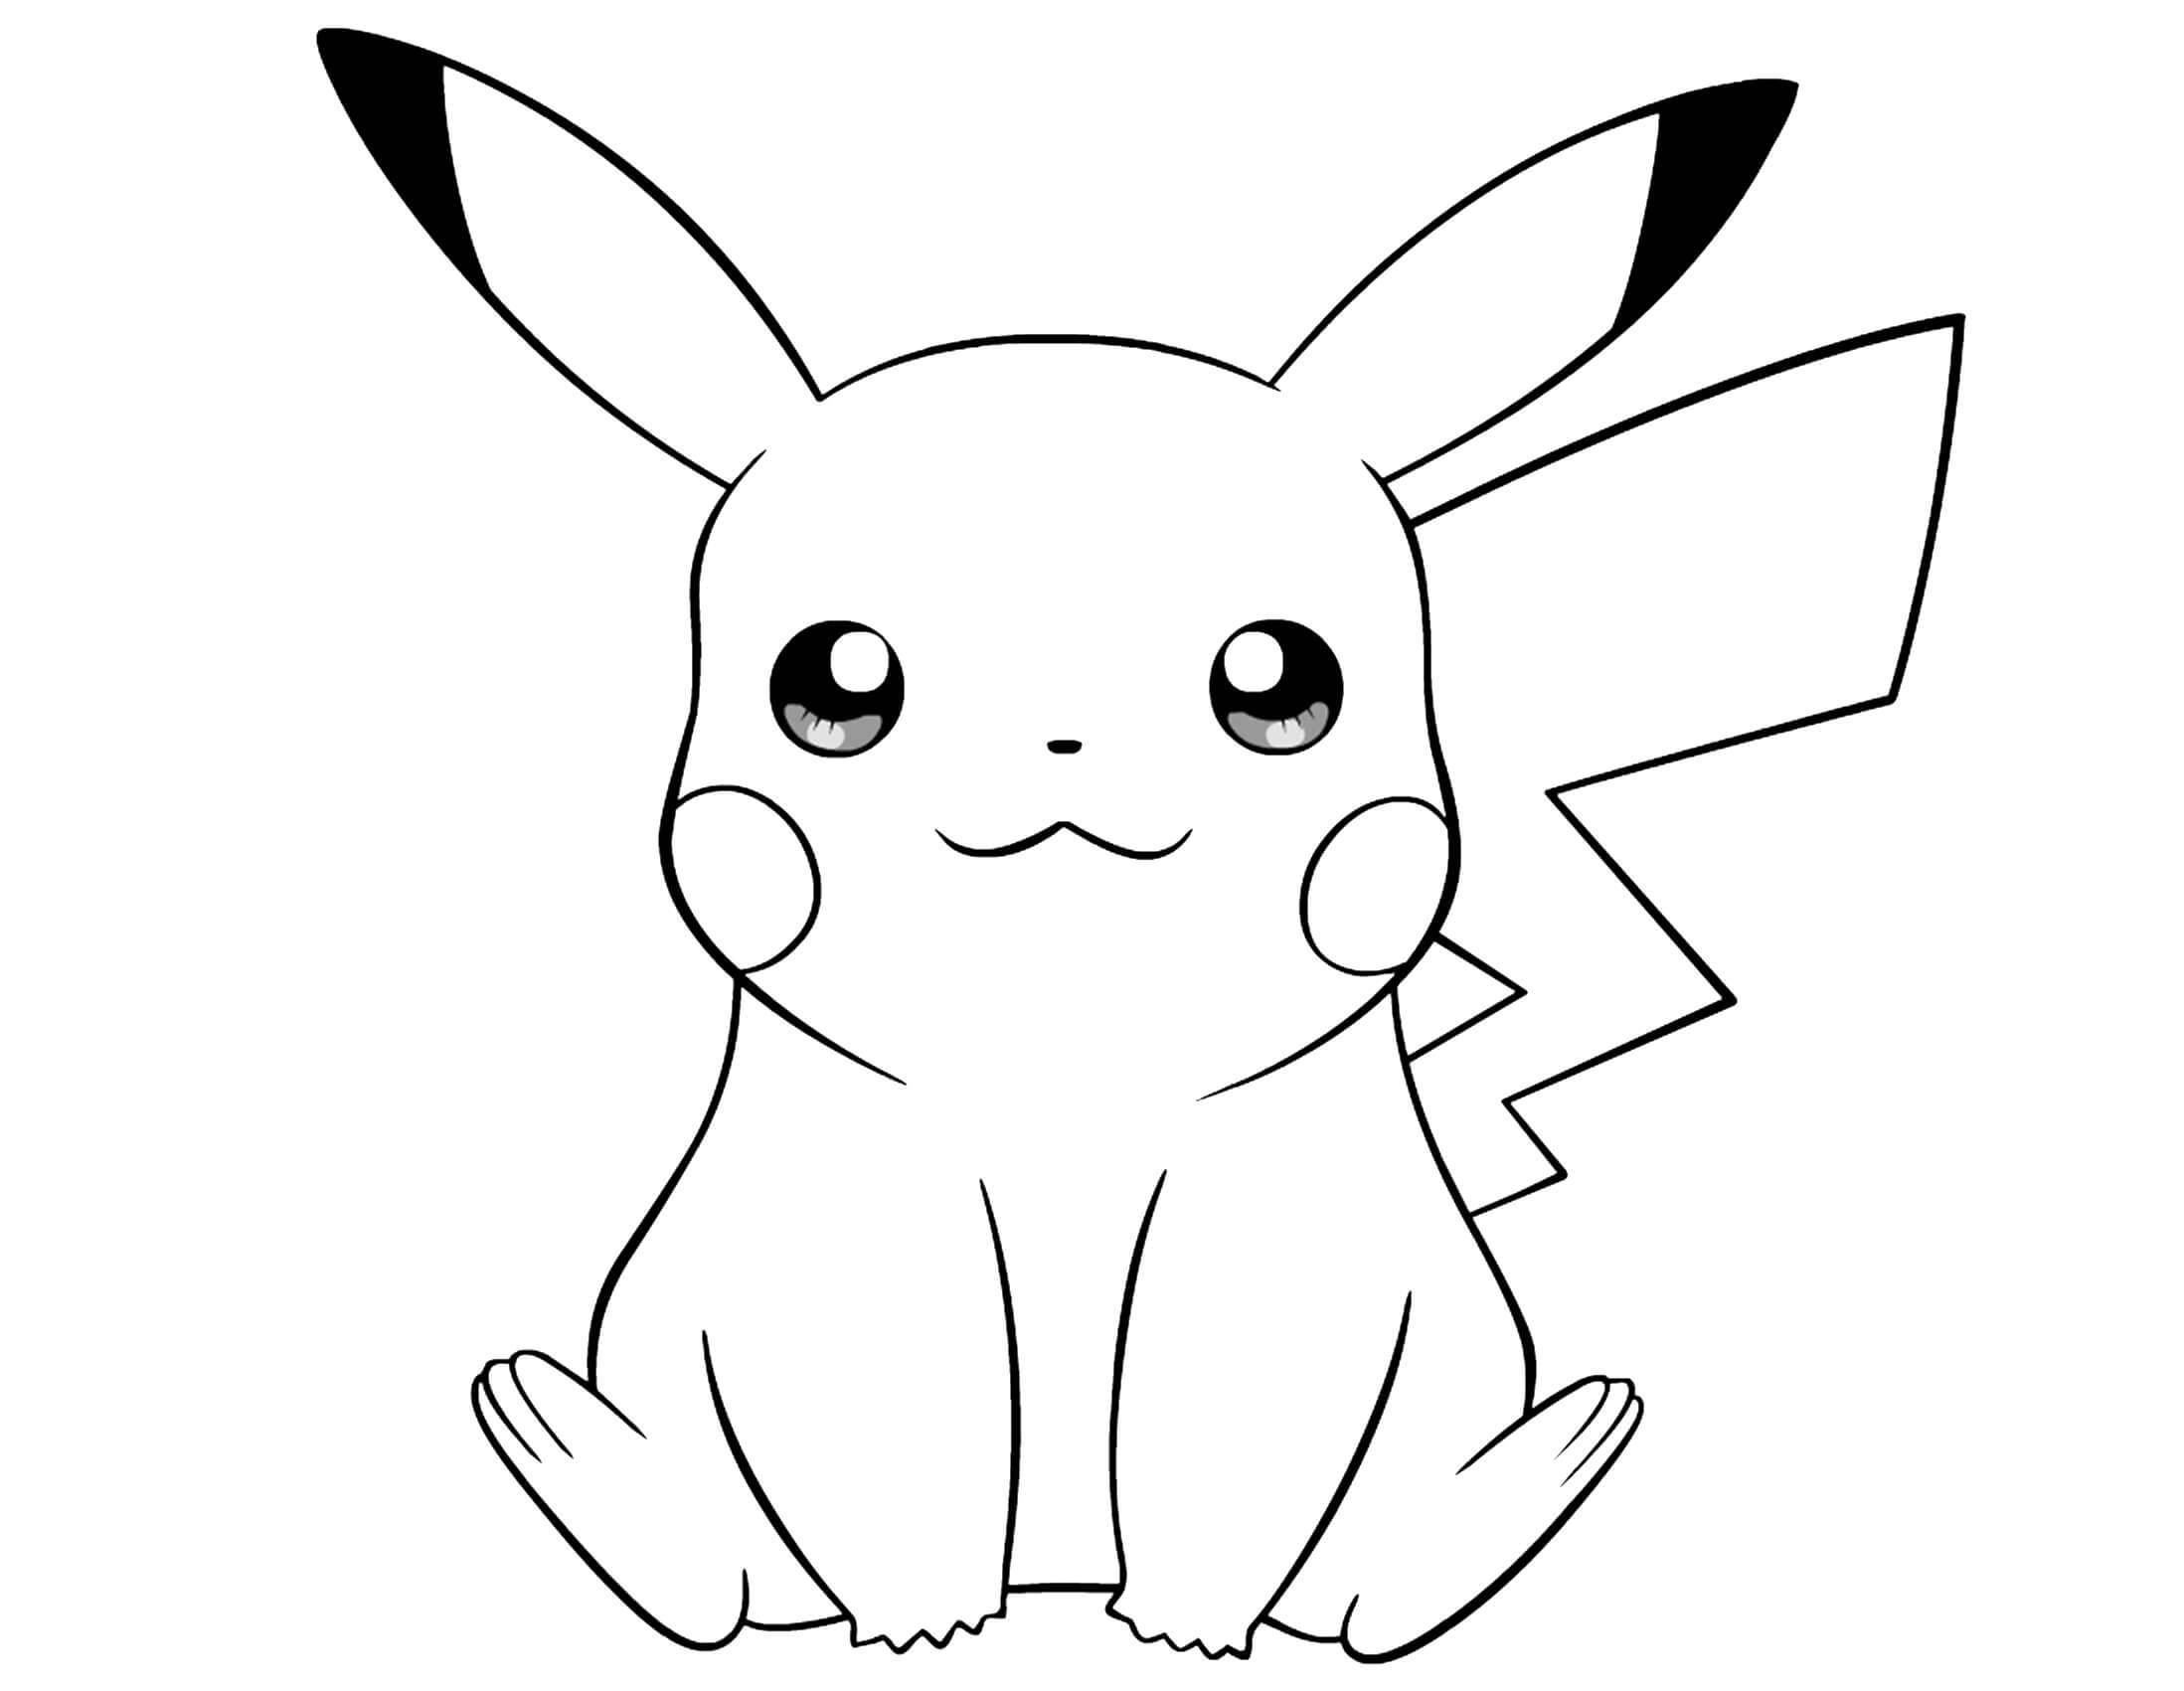 colouring pages pokemon black and white pikachu coloring pages to download and print for free colouring black white pokemon and pages